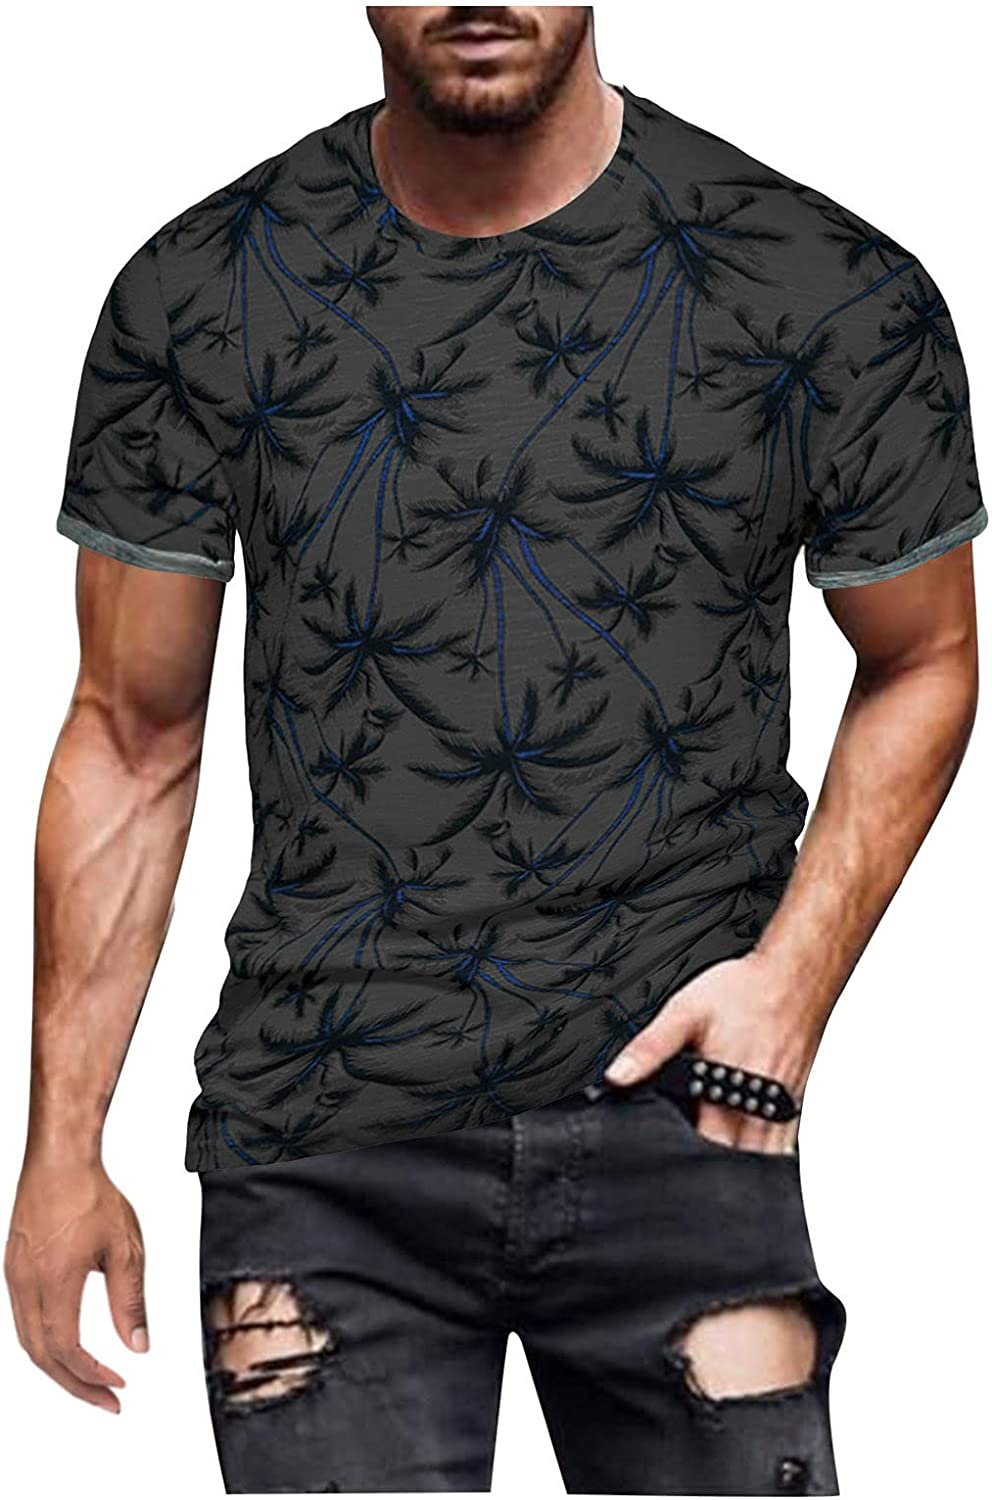 DZQUY Mens Gym Muscle Shirt Short Sleeve Summer Casual Vintage Oil Painting Print Hipster Hippie Graphic T-Shirts Tops